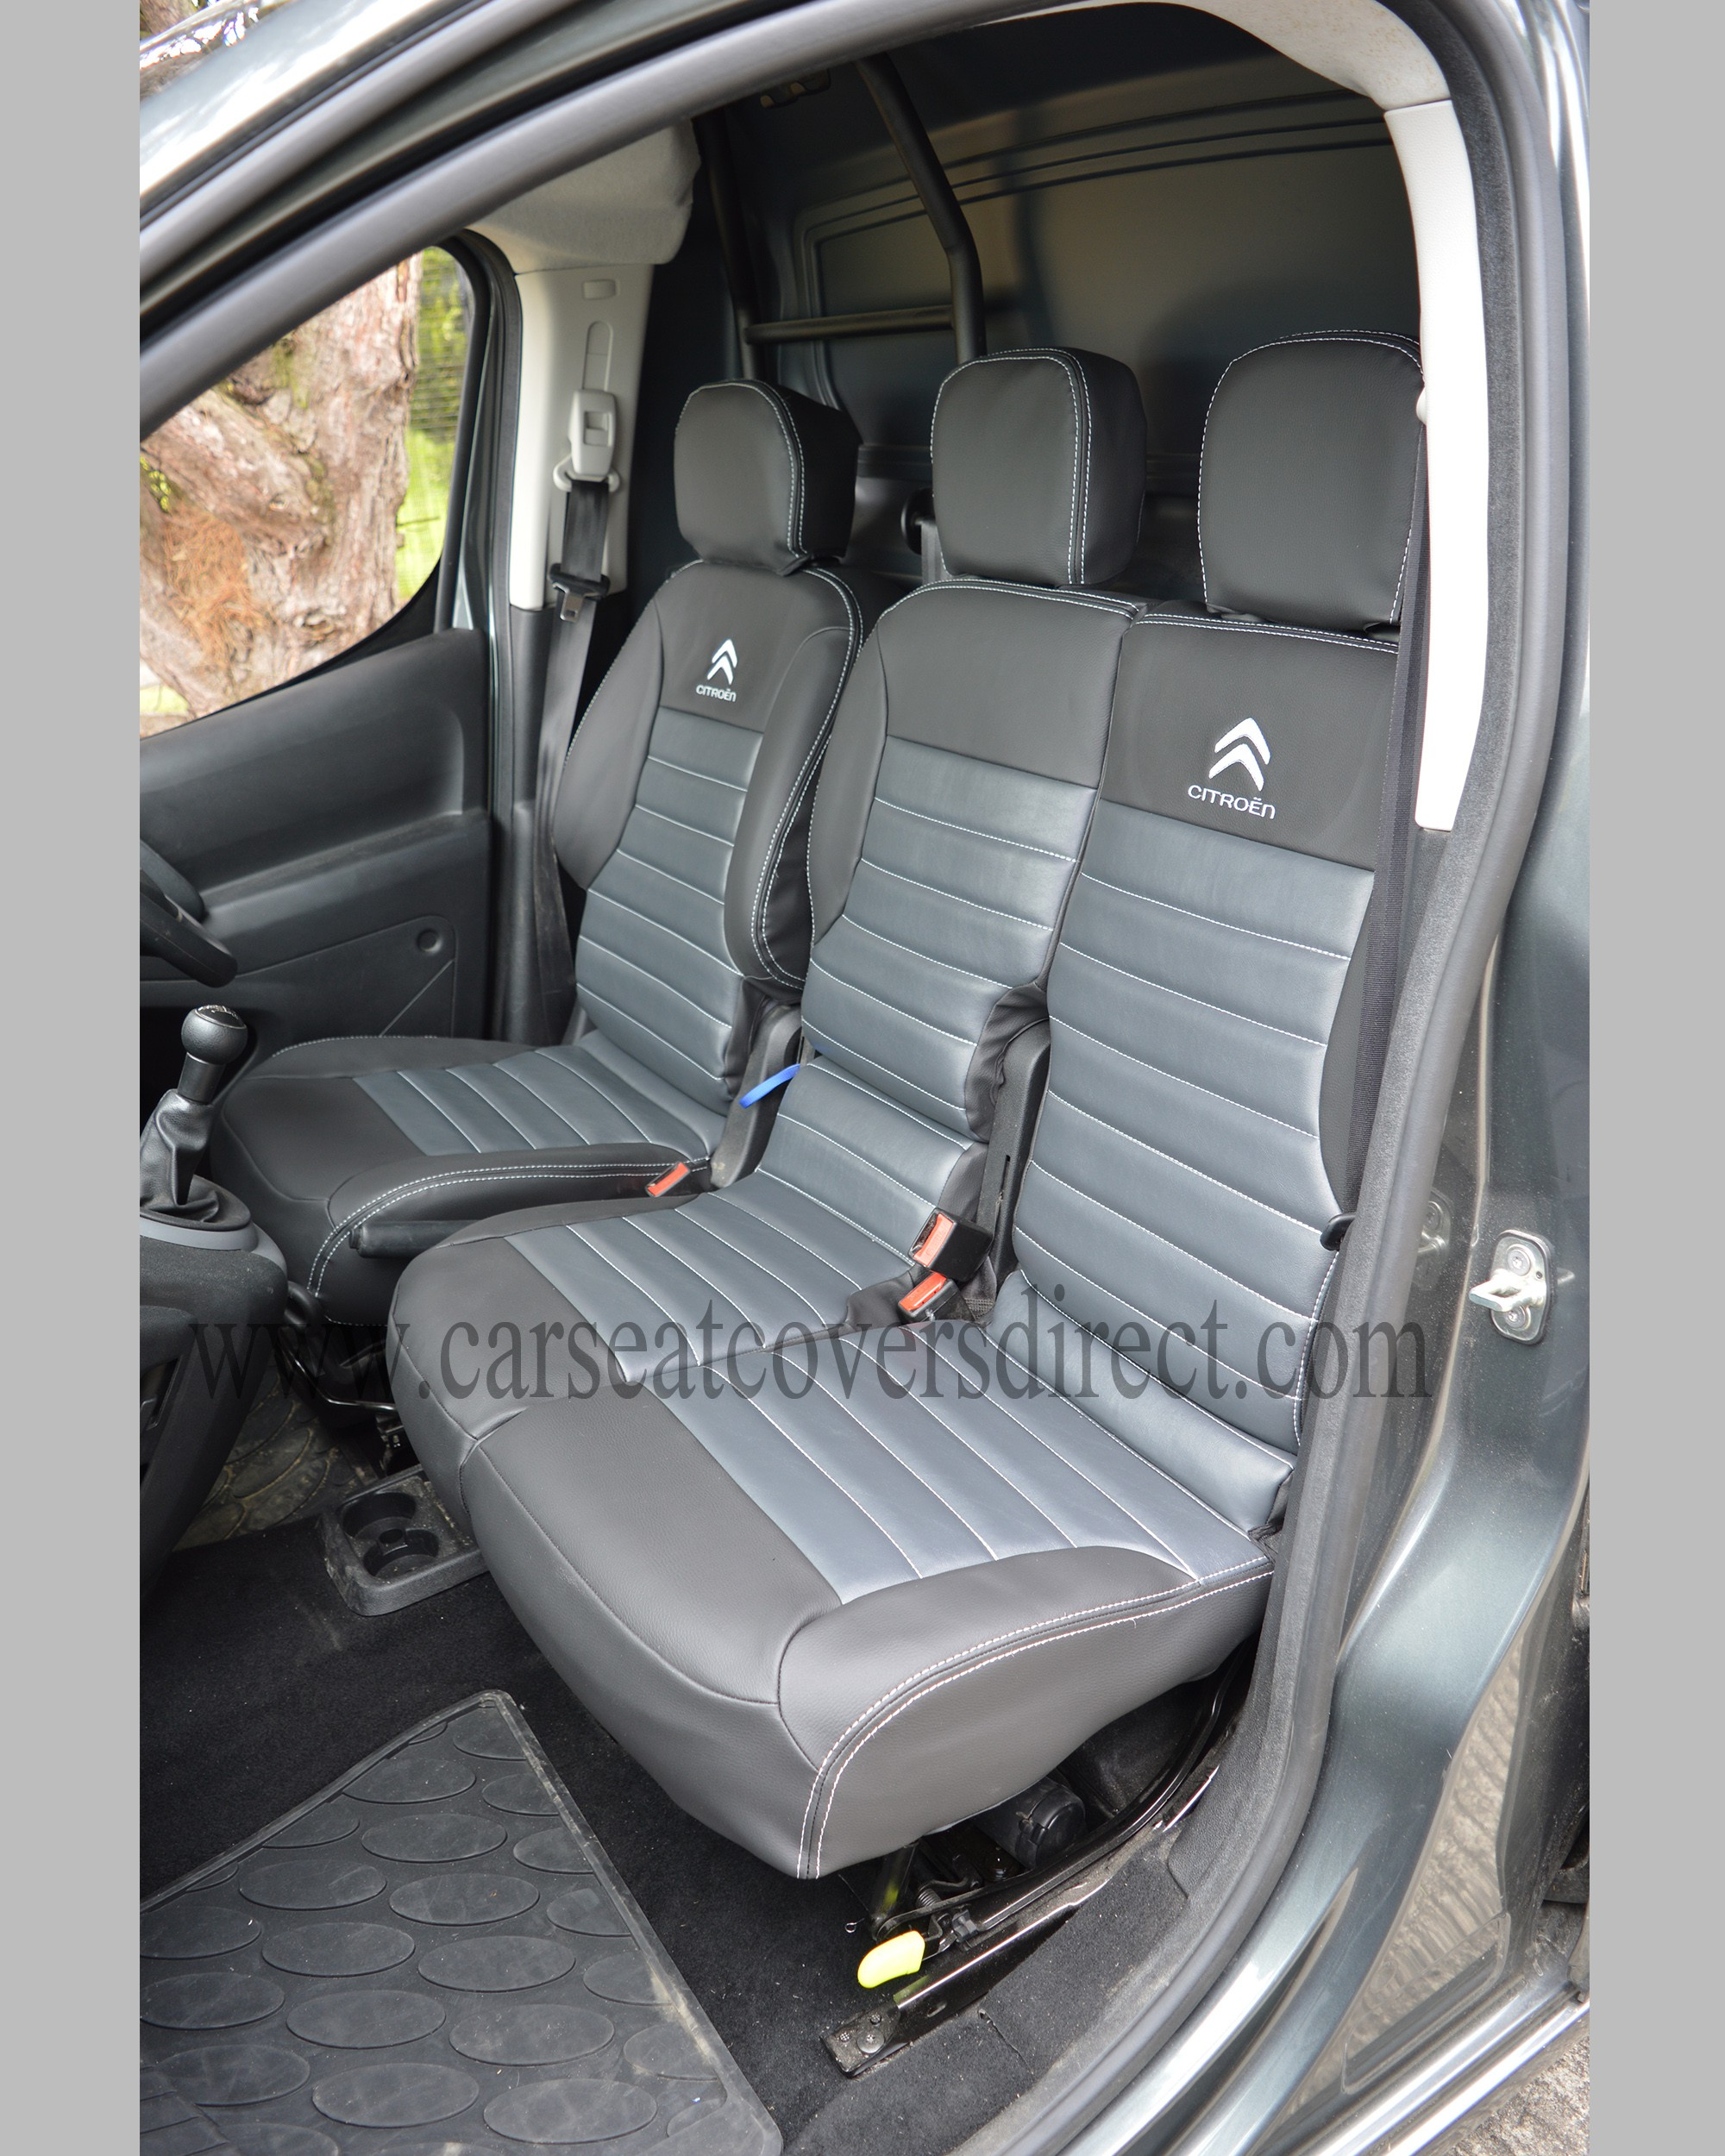 citroen berlingo tailored quilted seat covers charcoal pewter grey logos car seat covers